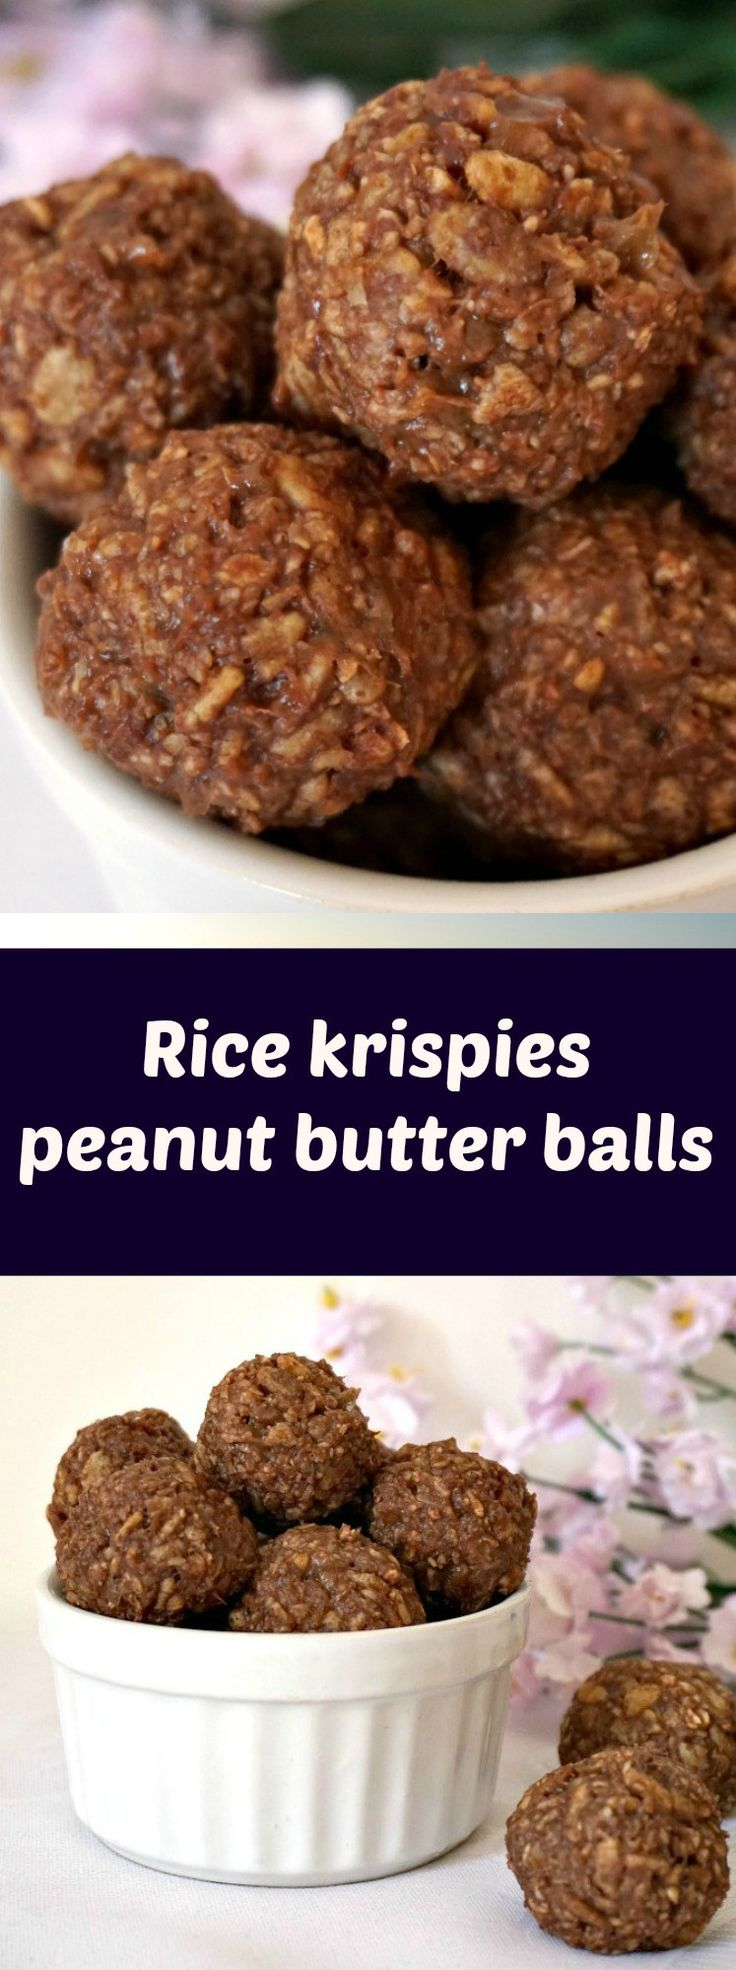 Rice krispies peanut butter balls with no refined sugar added, a healthy snack recipe to fill you up with energy. The best treat for kids and grown ups.